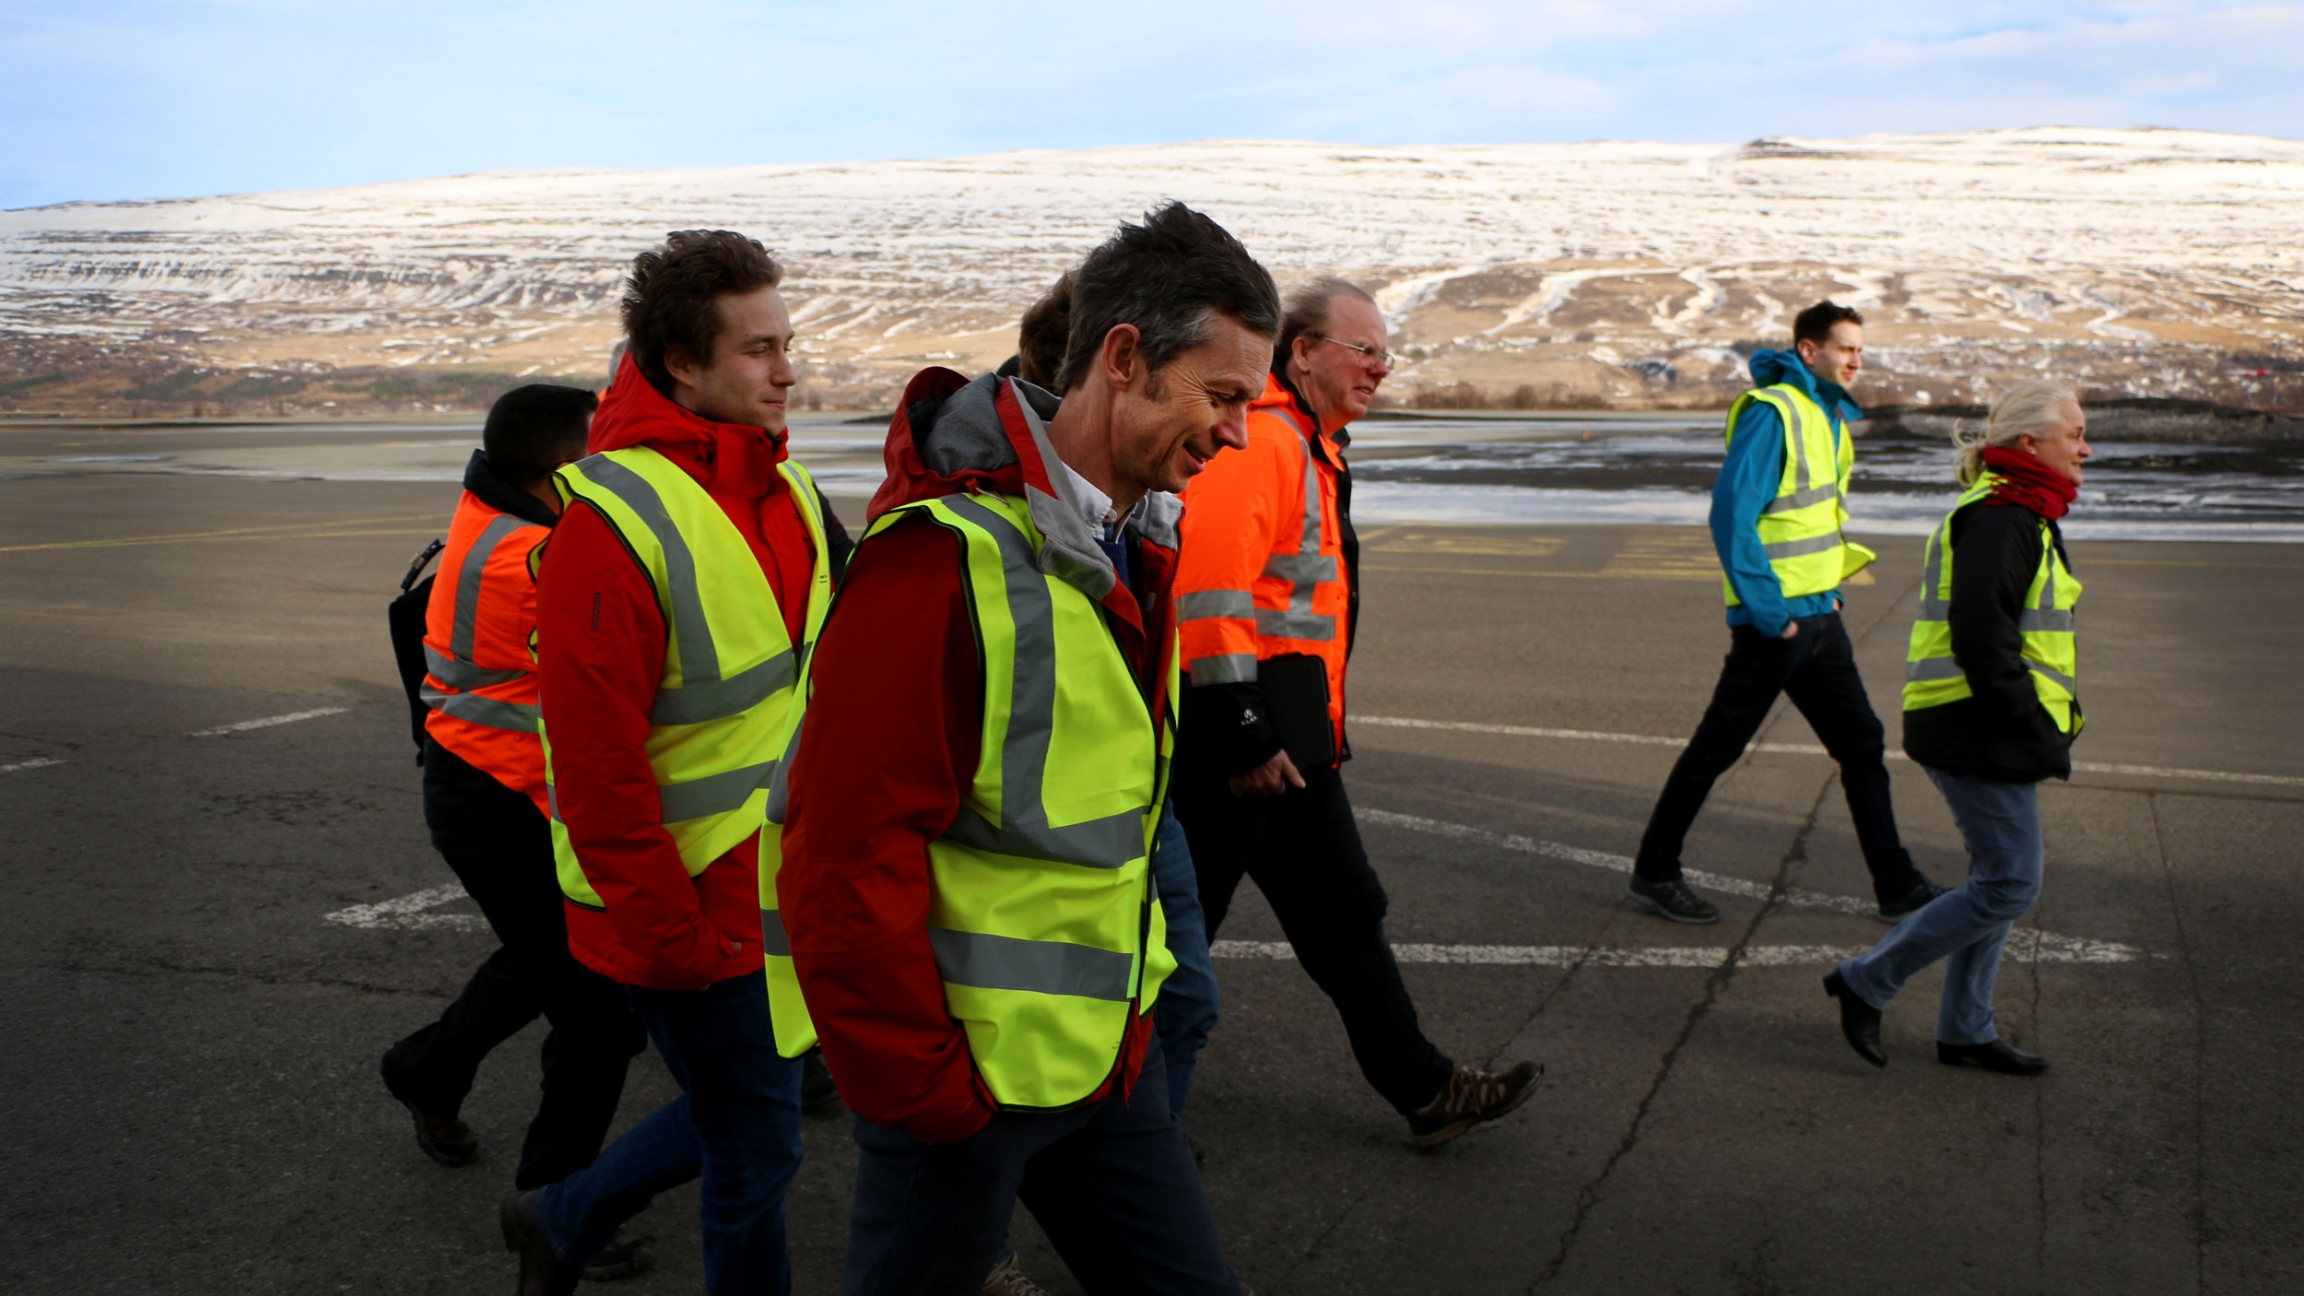 A group of people in bright safety vests walk through the wind on a tarmac.